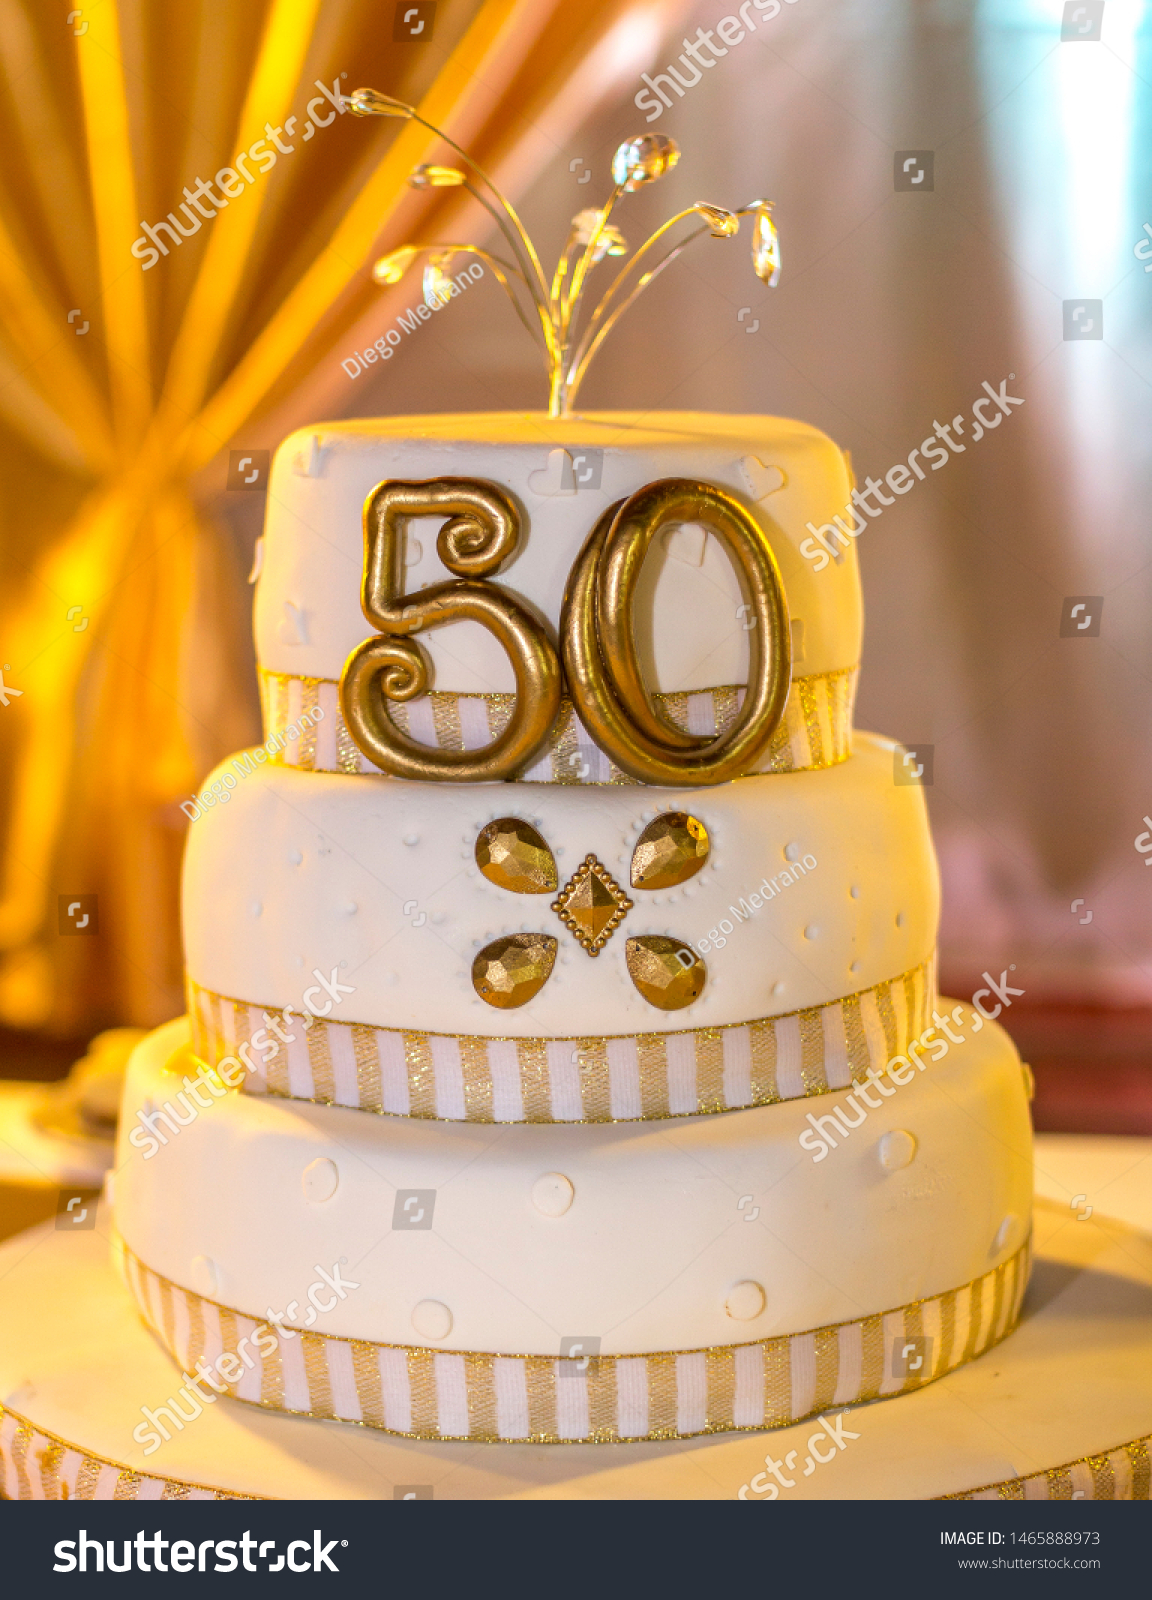 Phenomenal 50 Years Old Birthday Cake Stock Photo Edit Now 1465888973 Funny Birthday Cards Online Alyptdamsfinfo